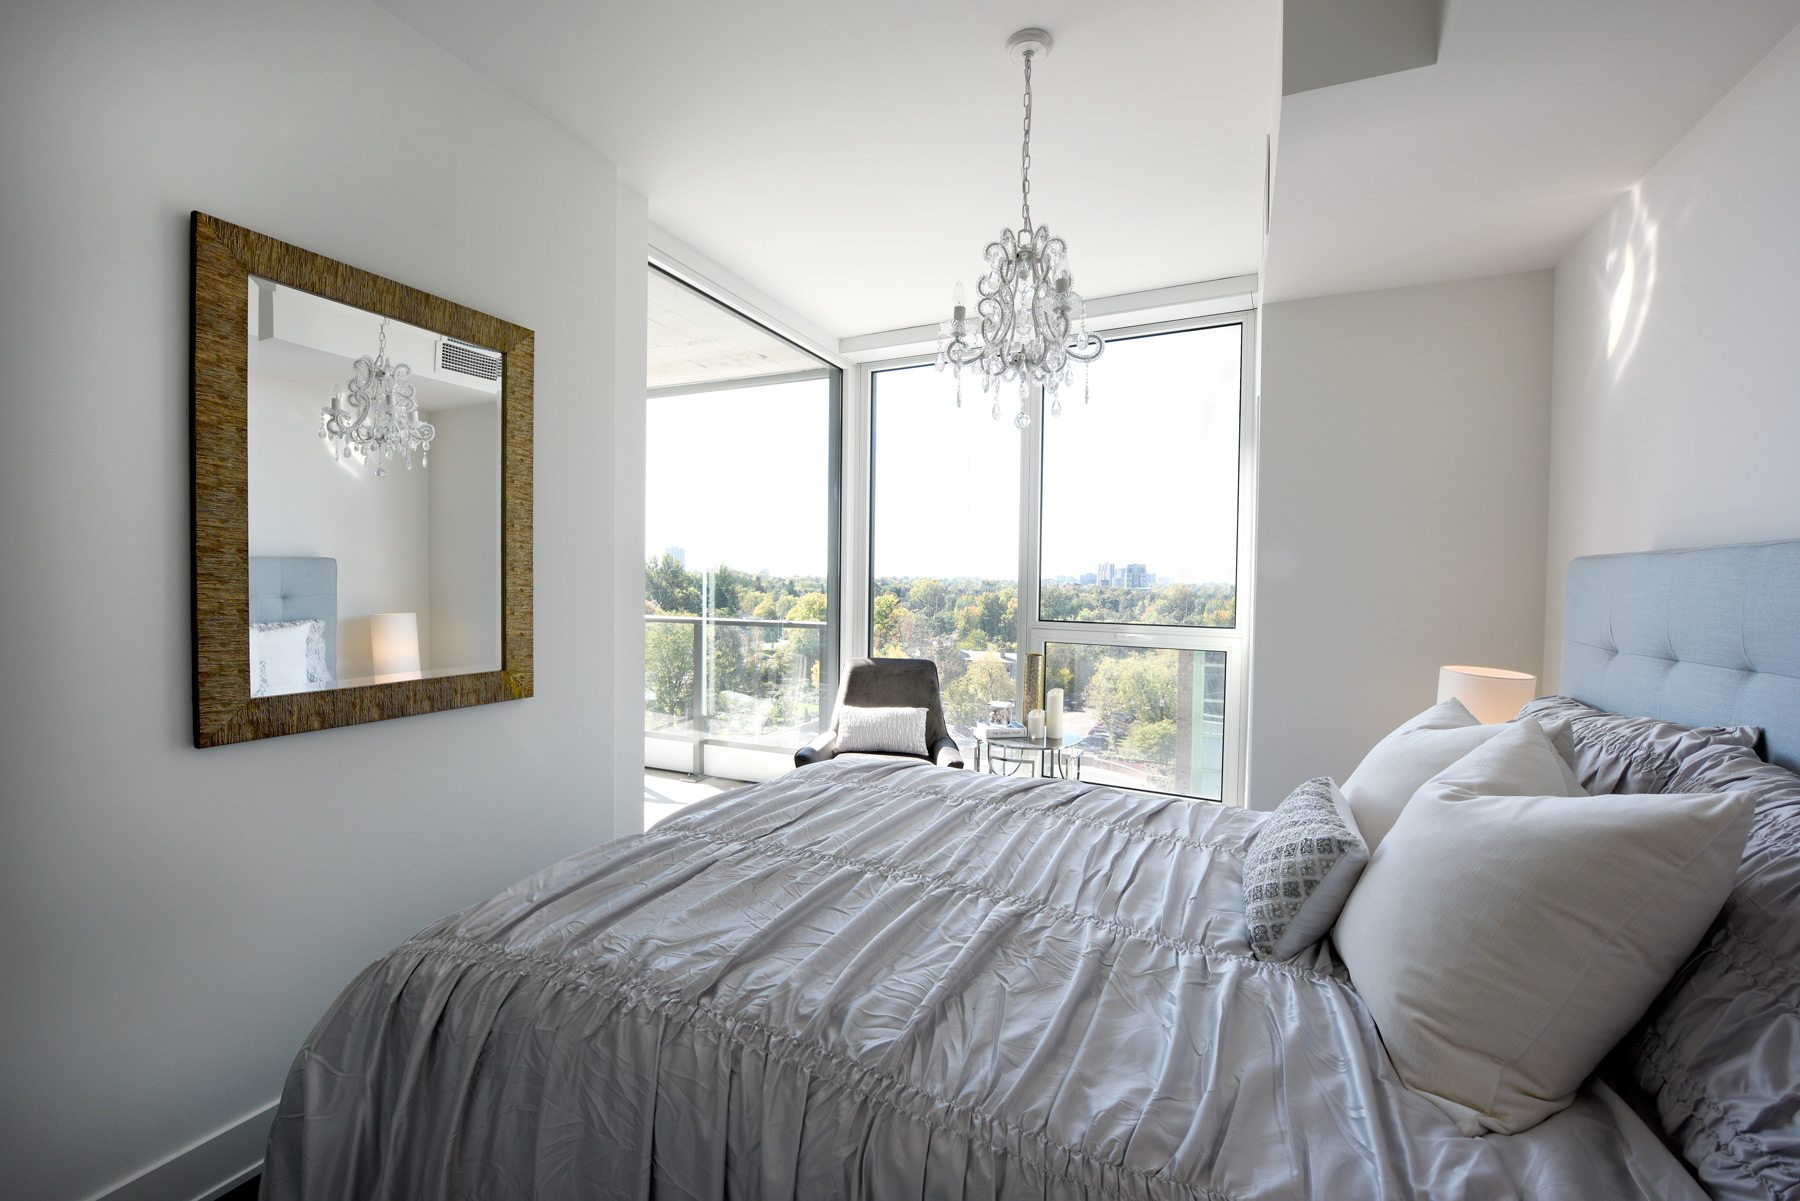 The Clifton suite's bedroom